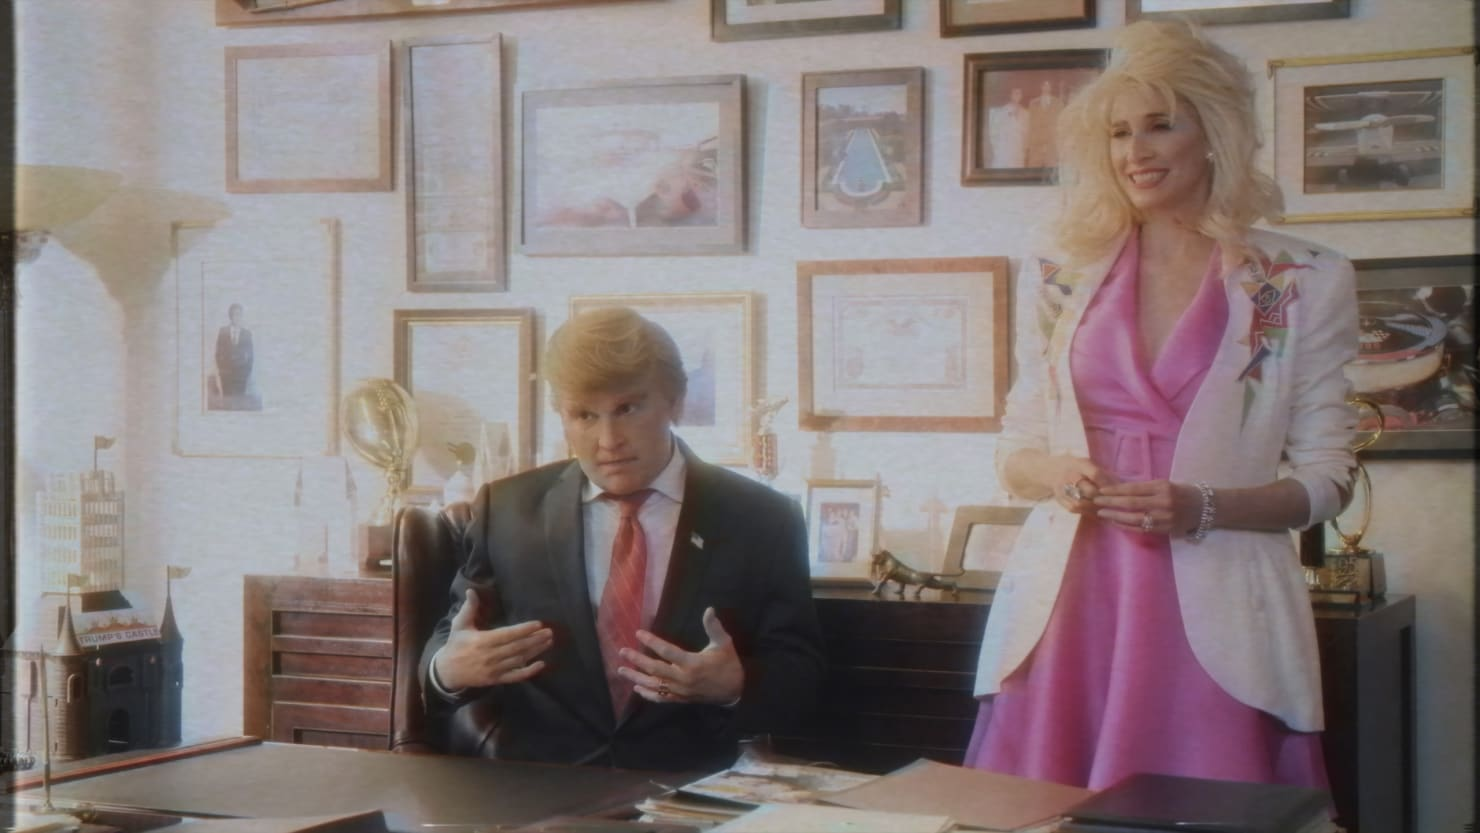 Inside Johnny Depp's Remarkable Transformation Into Funny or Die's Donald Trump